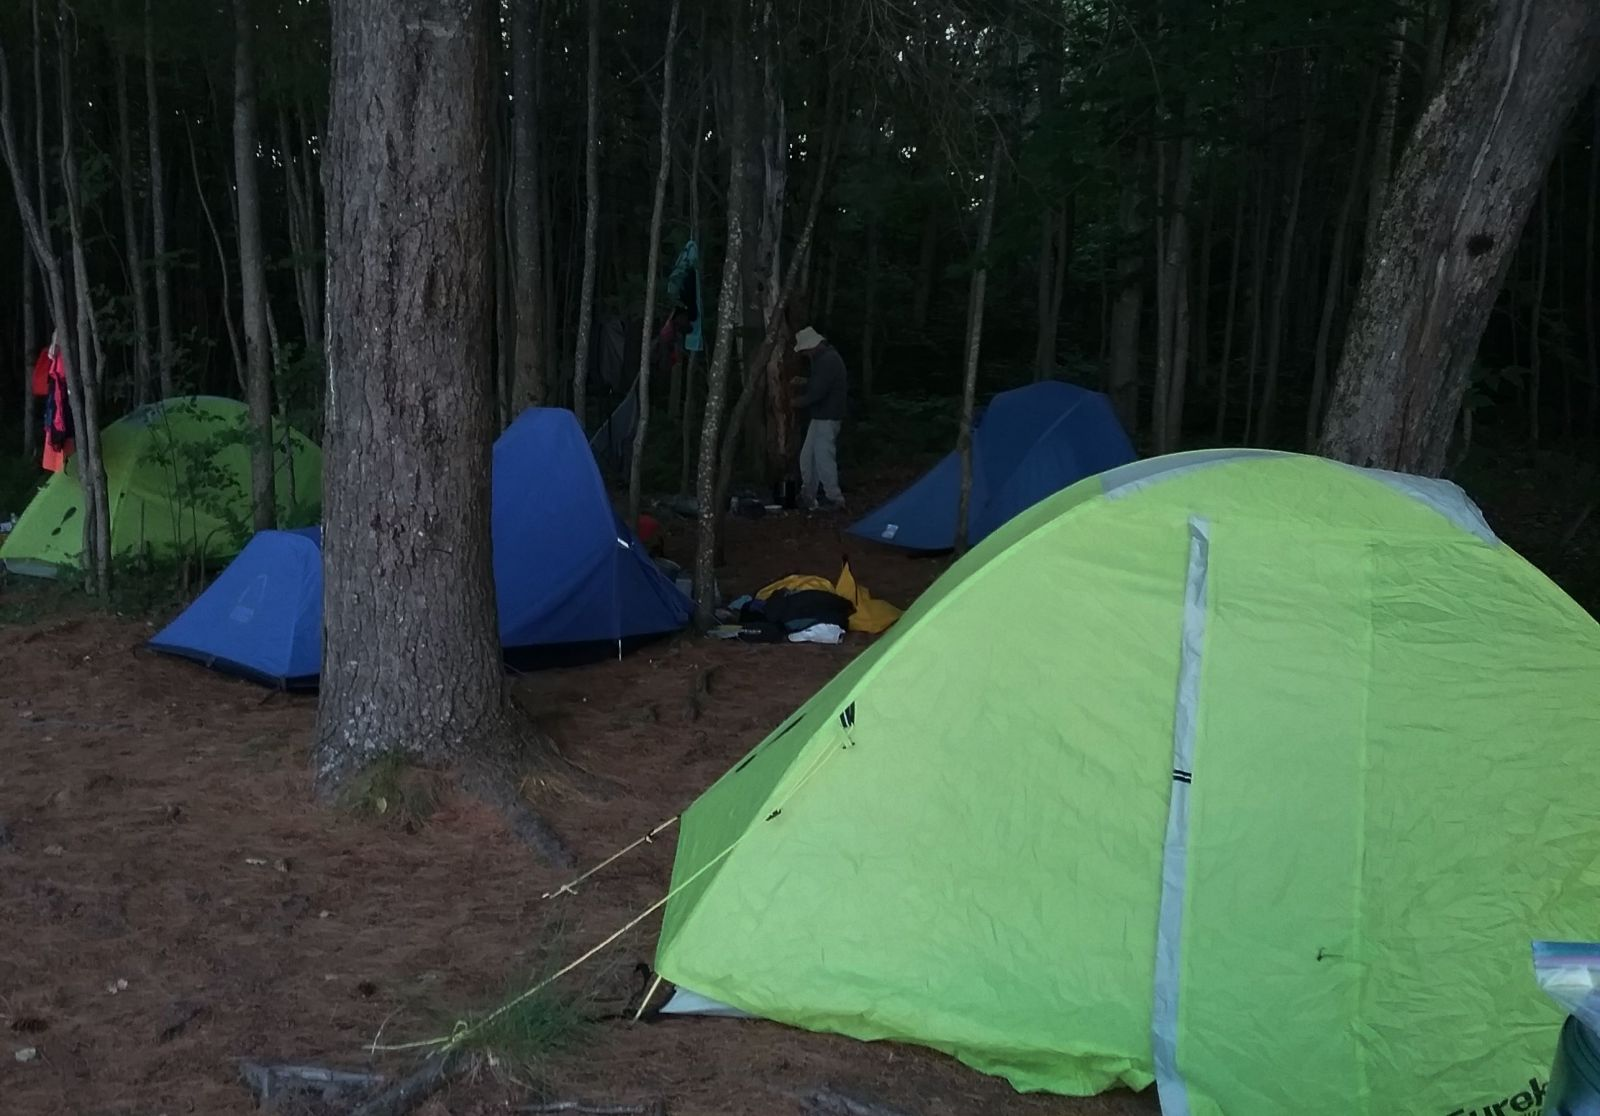 Tents and clothes lines. Notice the green tents, Peggy and I ended up with the same used tents.